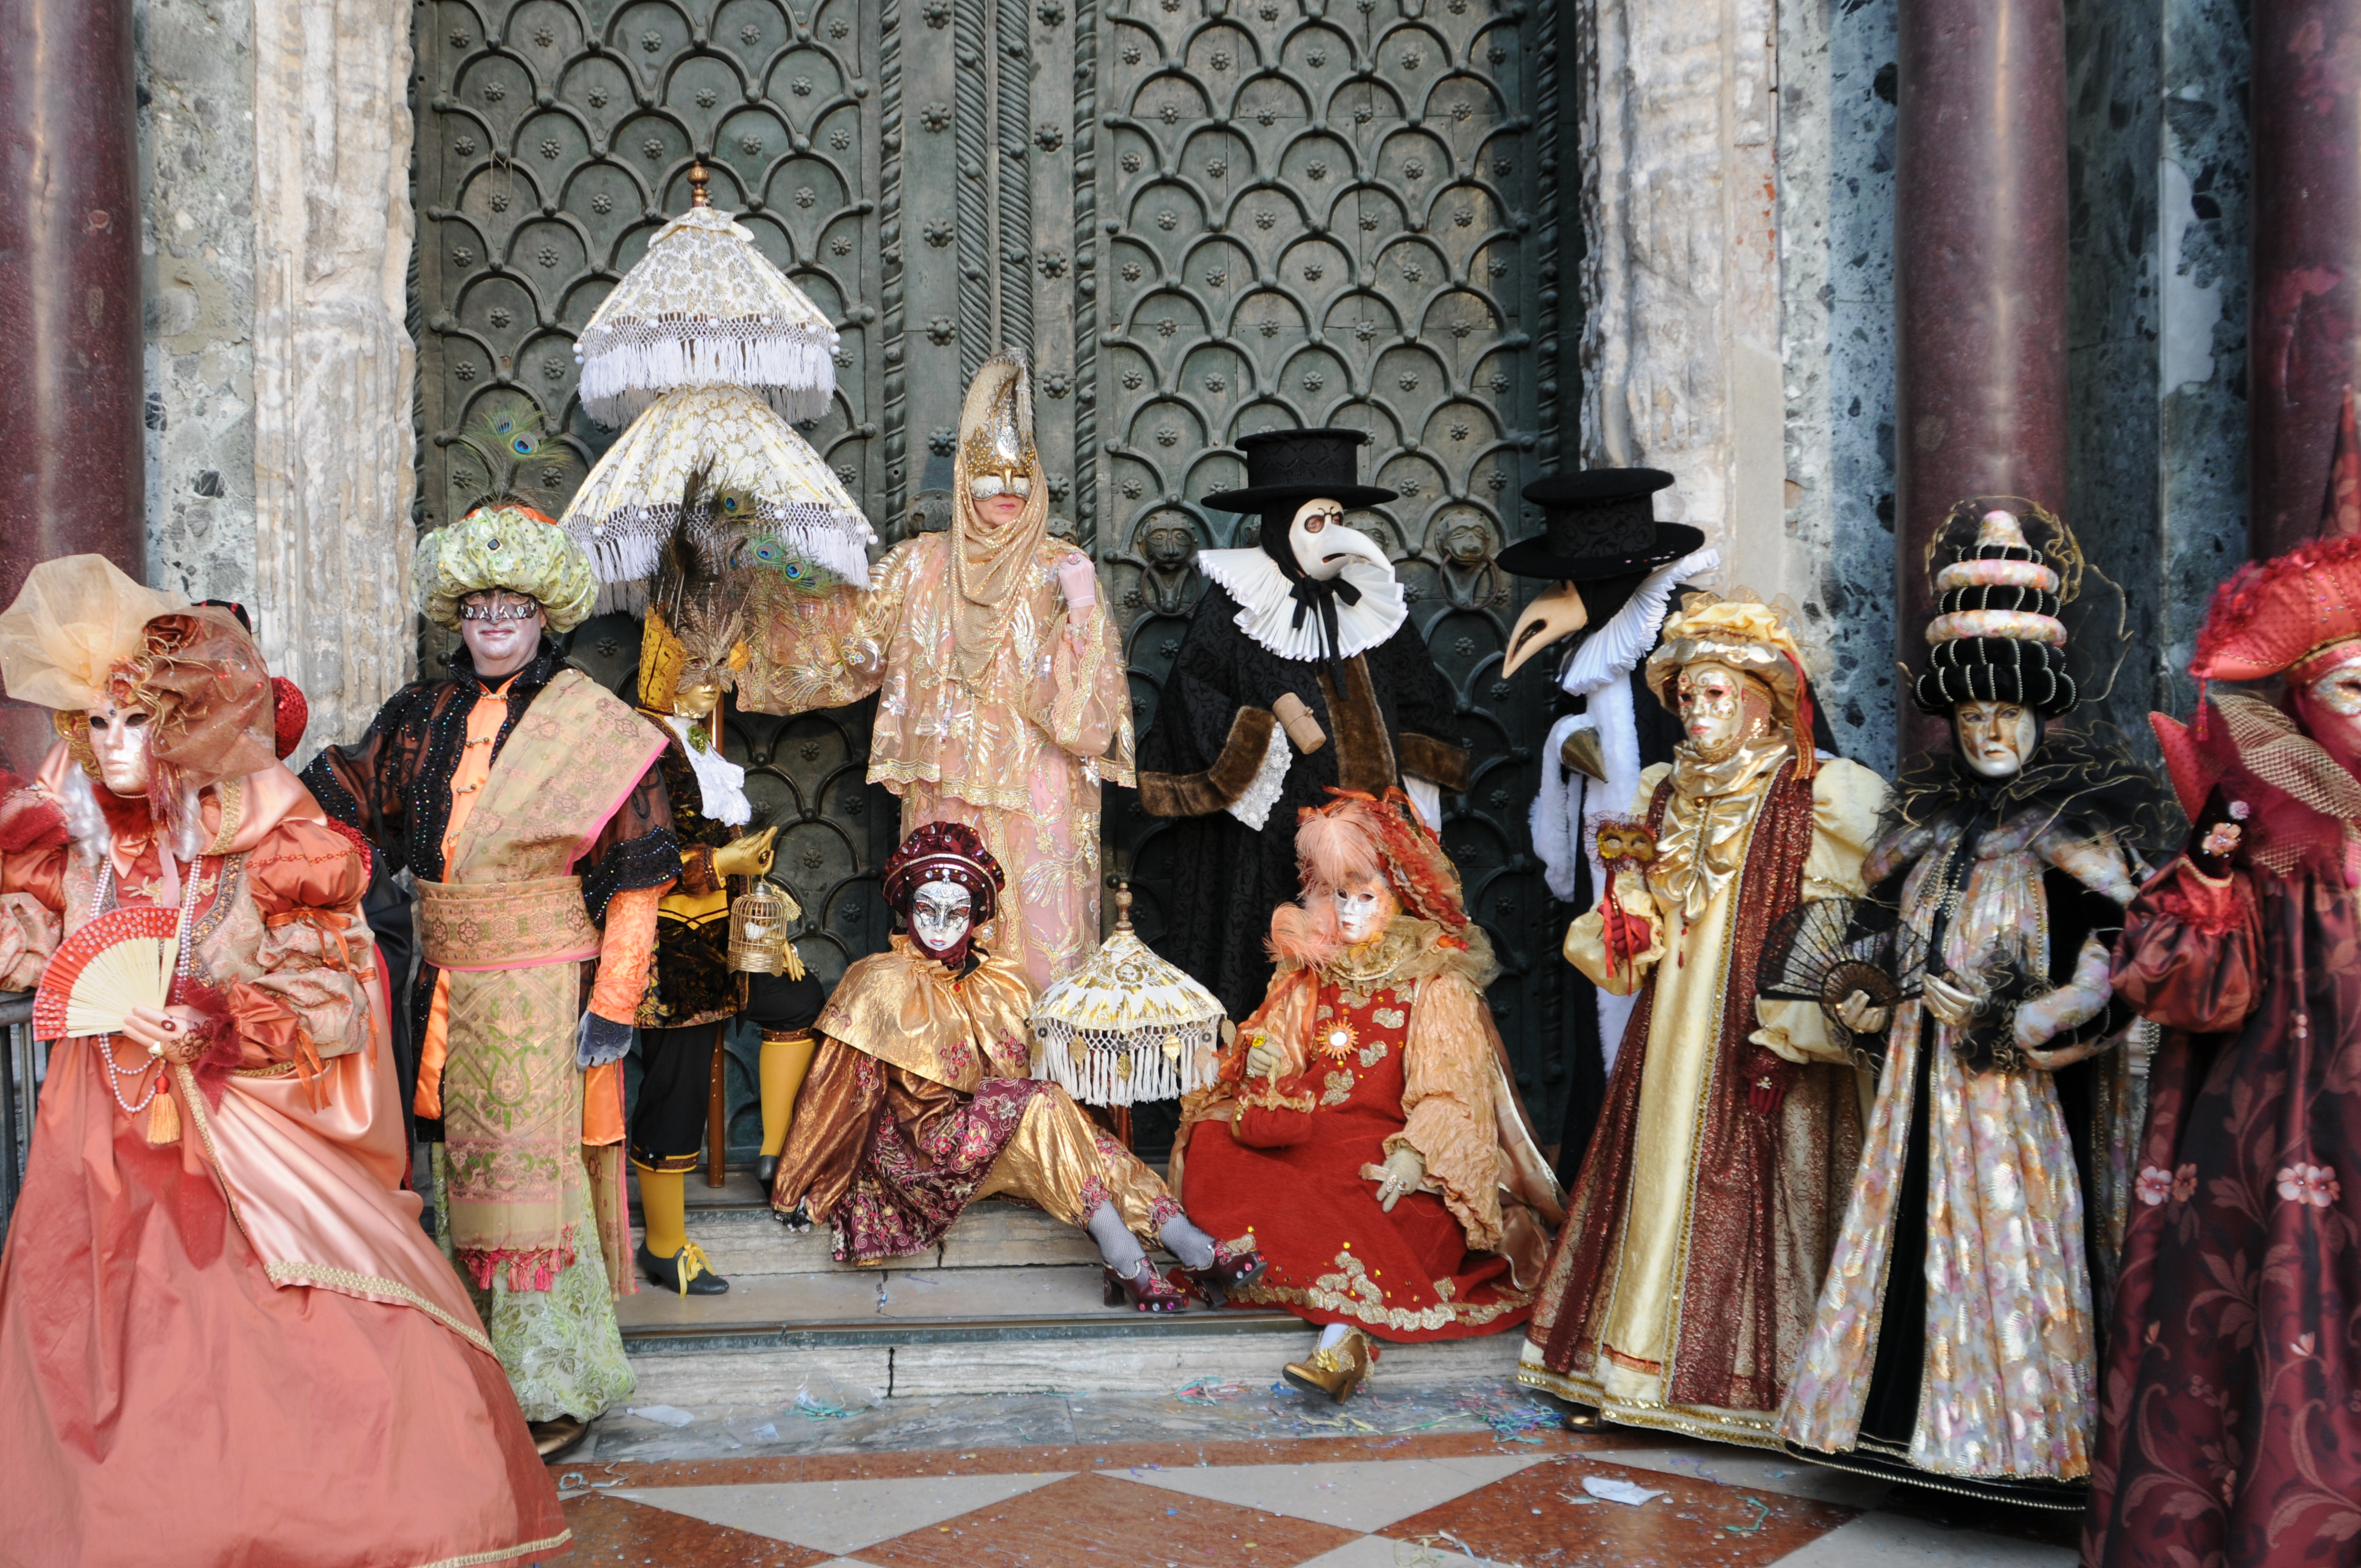 Uncategorized The Carnival Of Venice all about carnival in venice venetian masks and more gorgeous costumes abound during carnevale venice